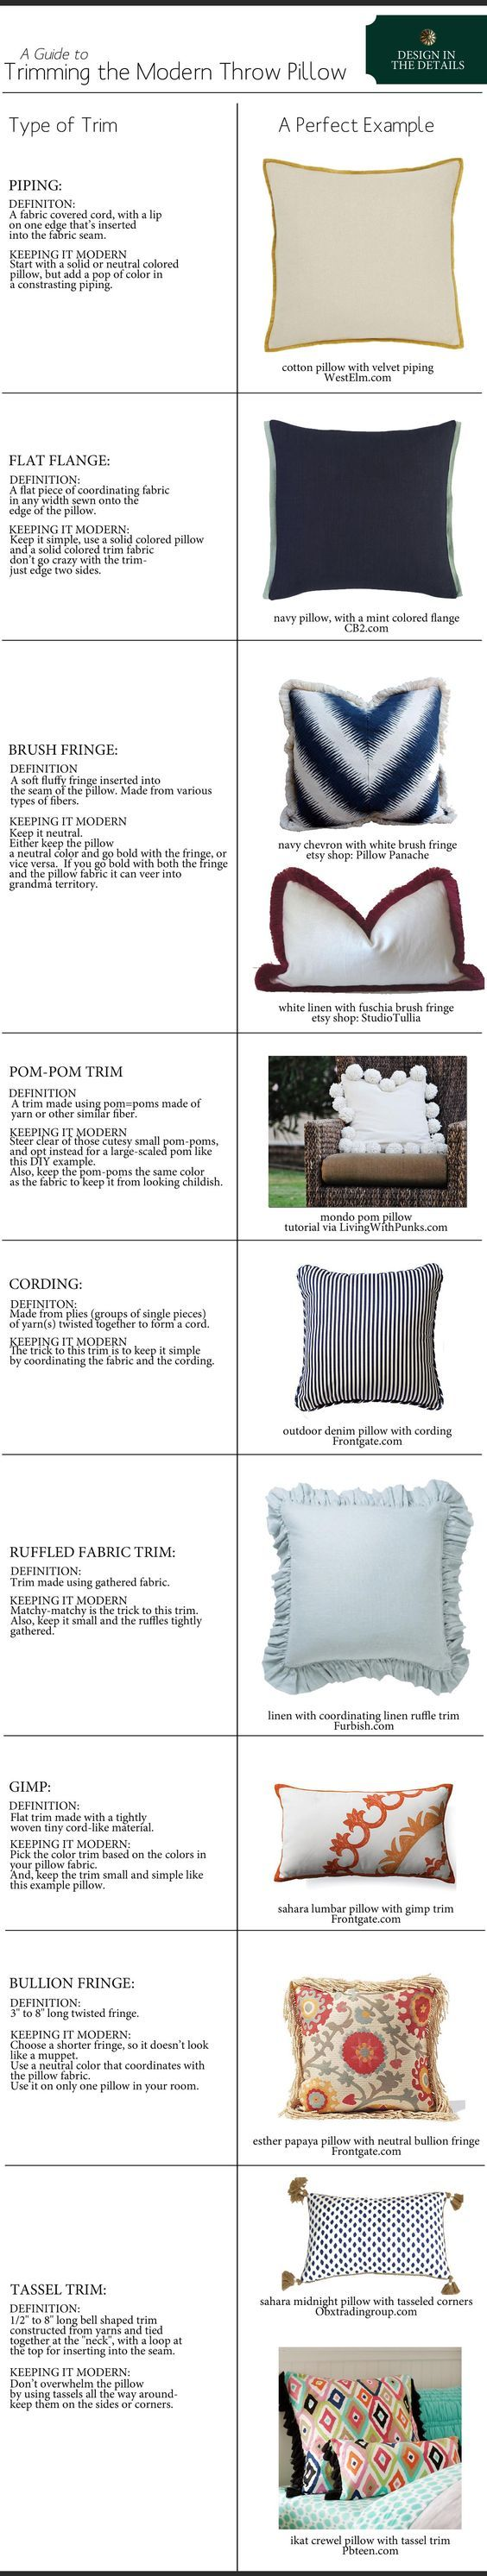 A guide for trimming the modern throw pillow design and decor